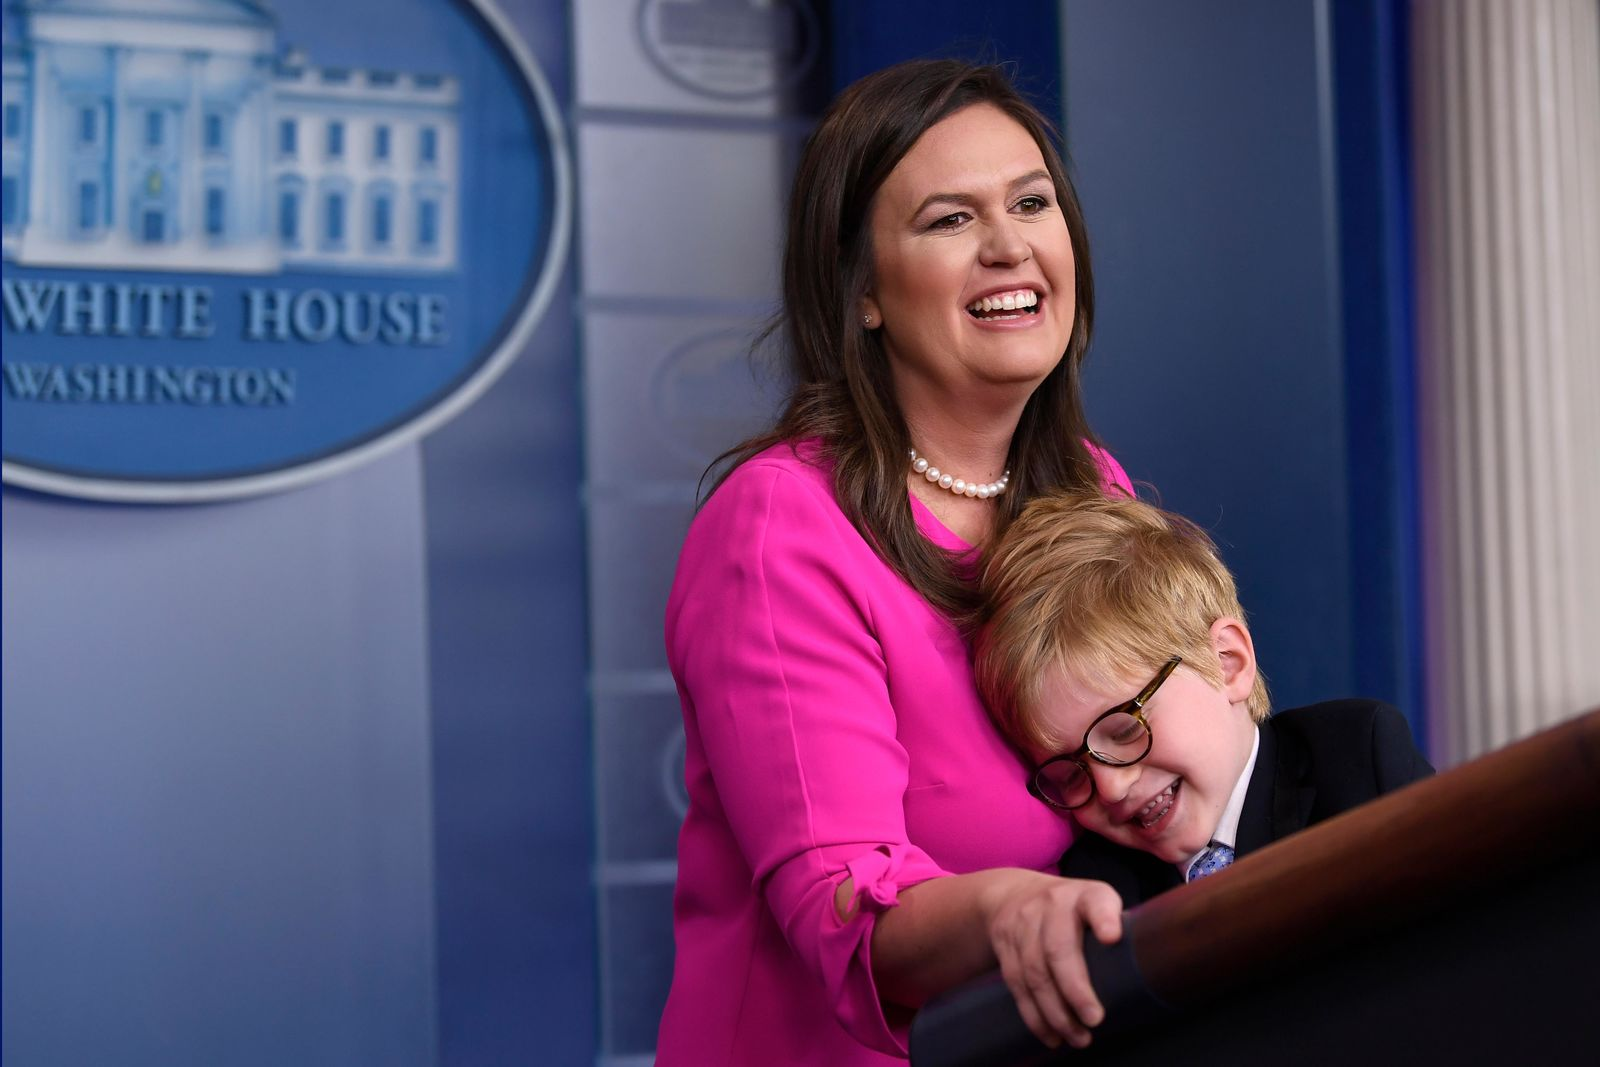 White House press secretary Sarah Sanders, standing next to her son Huck Sanders, speaks during a briefing at the White House in Washington, Thursday, April 25, 2019. (AP Photo/Susan Walsh)